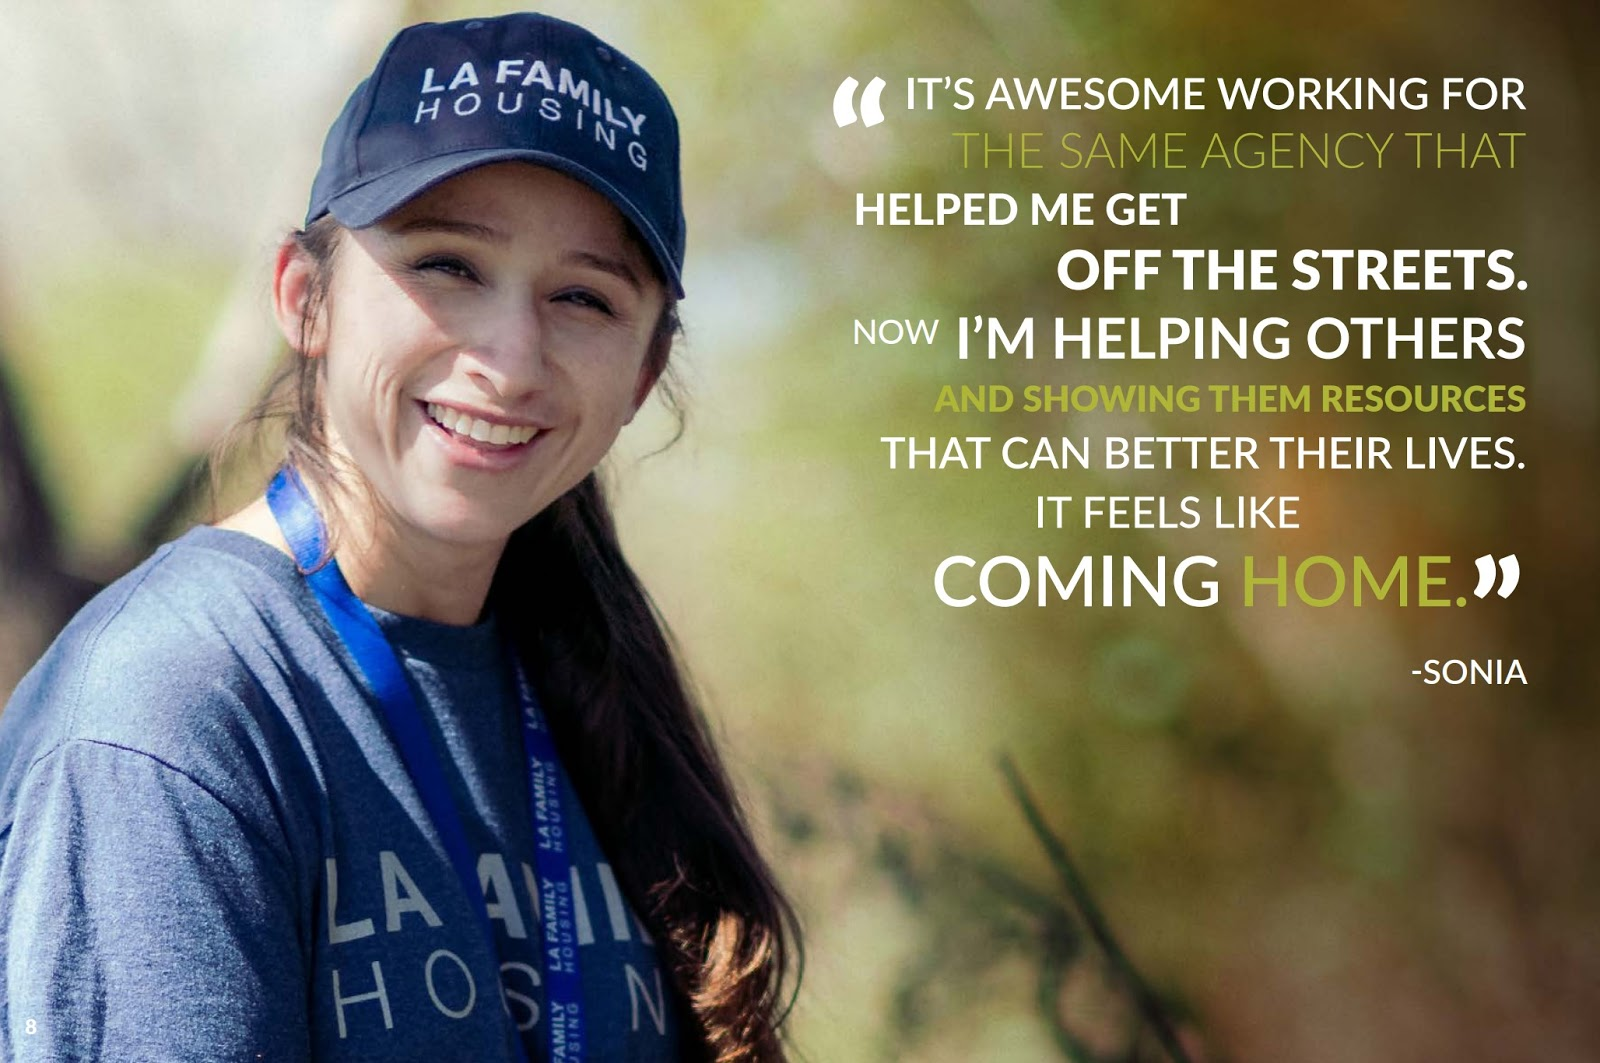 """An image from LA Family Housing with a quote: """"It's awesome working for the same agency that helped me get off the streets. Now I'm helping others and showing them resources that can better their lives. It feels like coming home."""" - Sonia"""